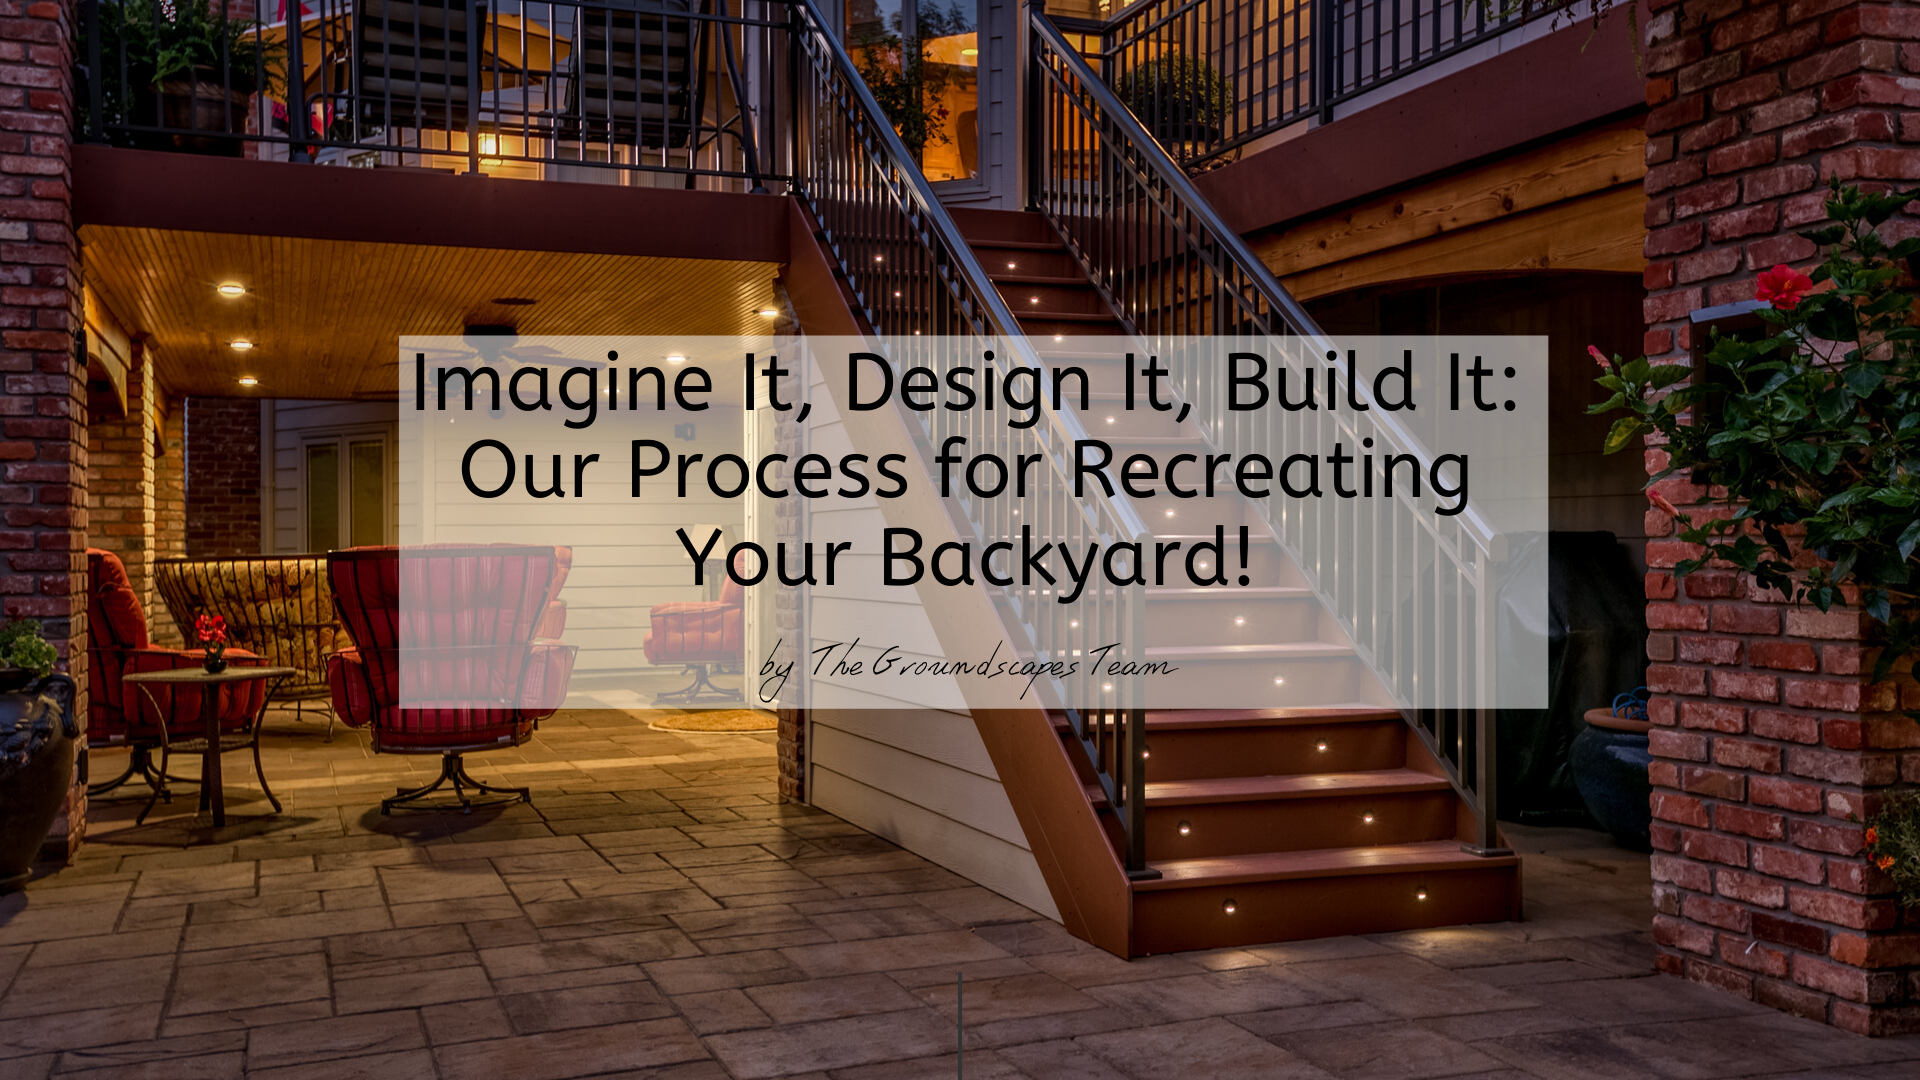 Imagine It, Design It, Build It: Our Process for Recreating Your Backyard!